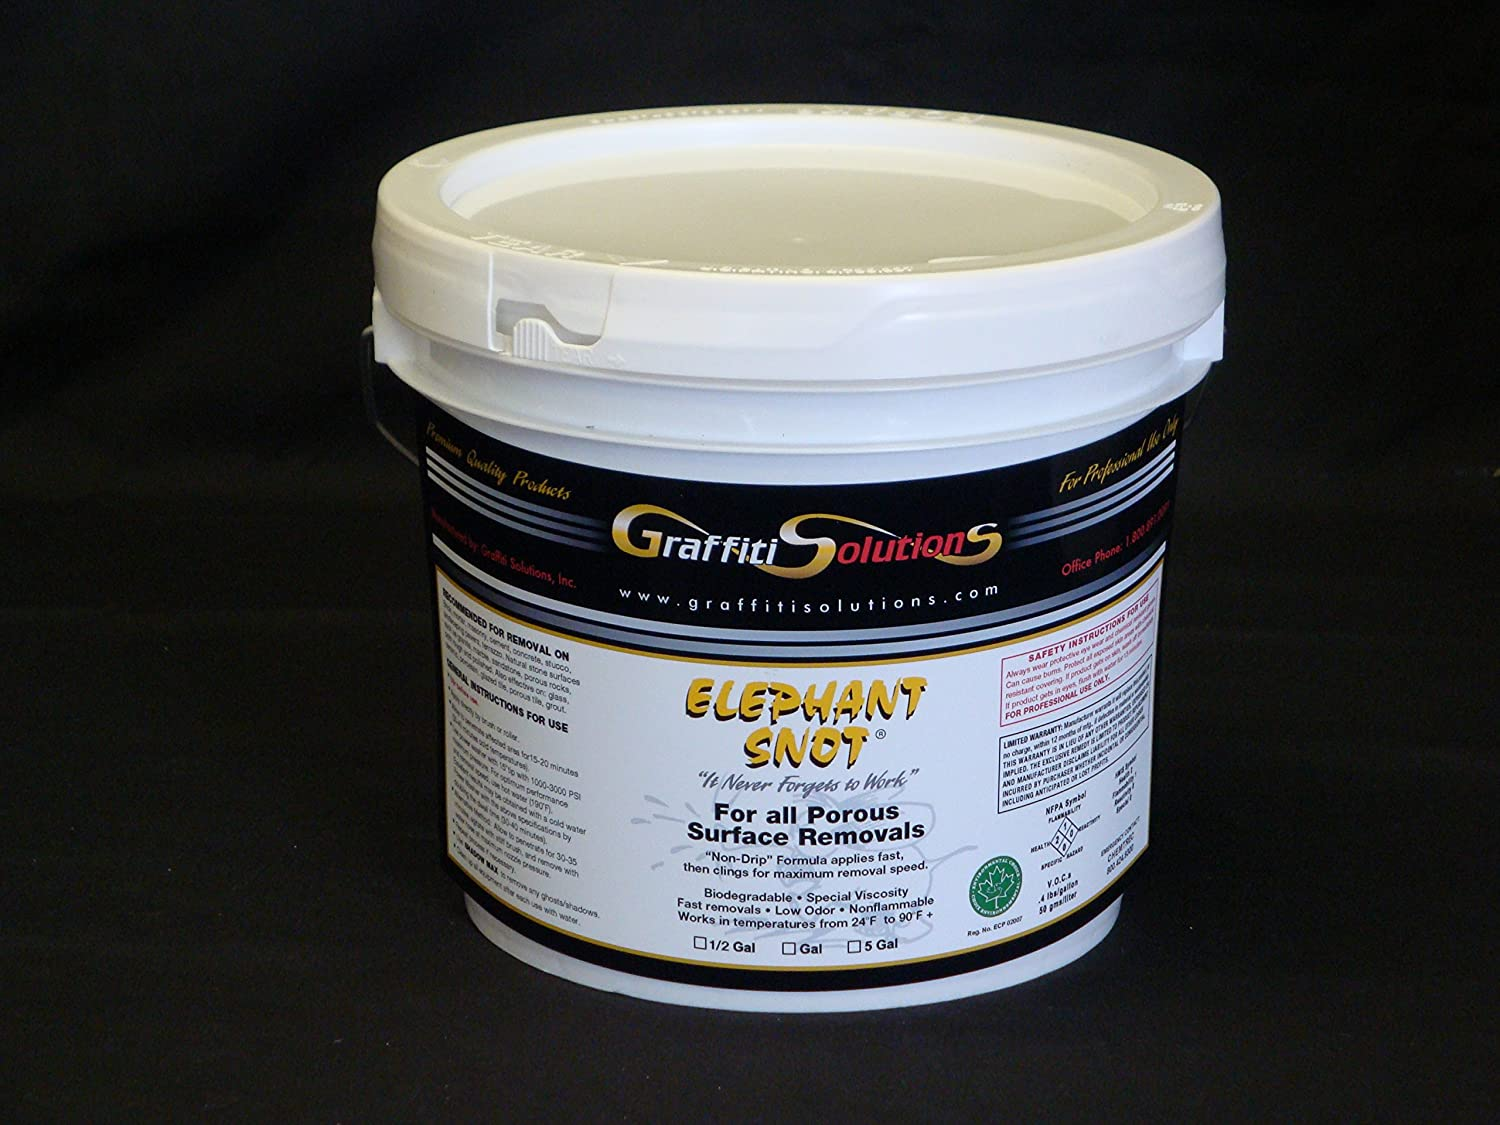 Elephant Snot Graffiti Remover 1 Gal Used By Professionals on Porous Surfaces for Exceptional Graffiti Removal of spray paint, marking pens, difficult to remove 2-part paint, epoxy, urethane and more Graffiti Solutions ESGR-1